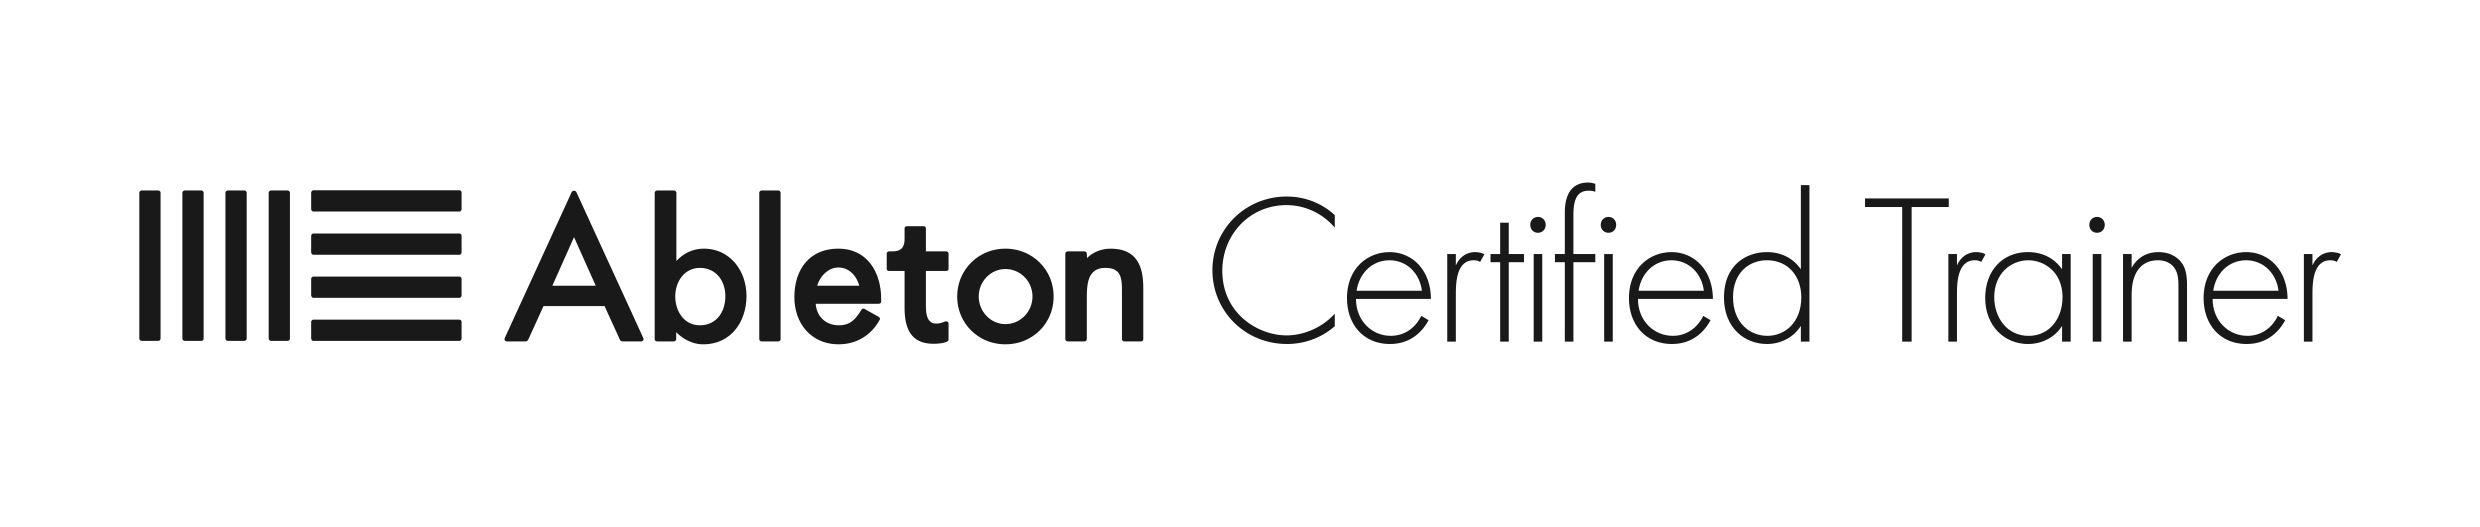 ableton_certified_trainer_logo